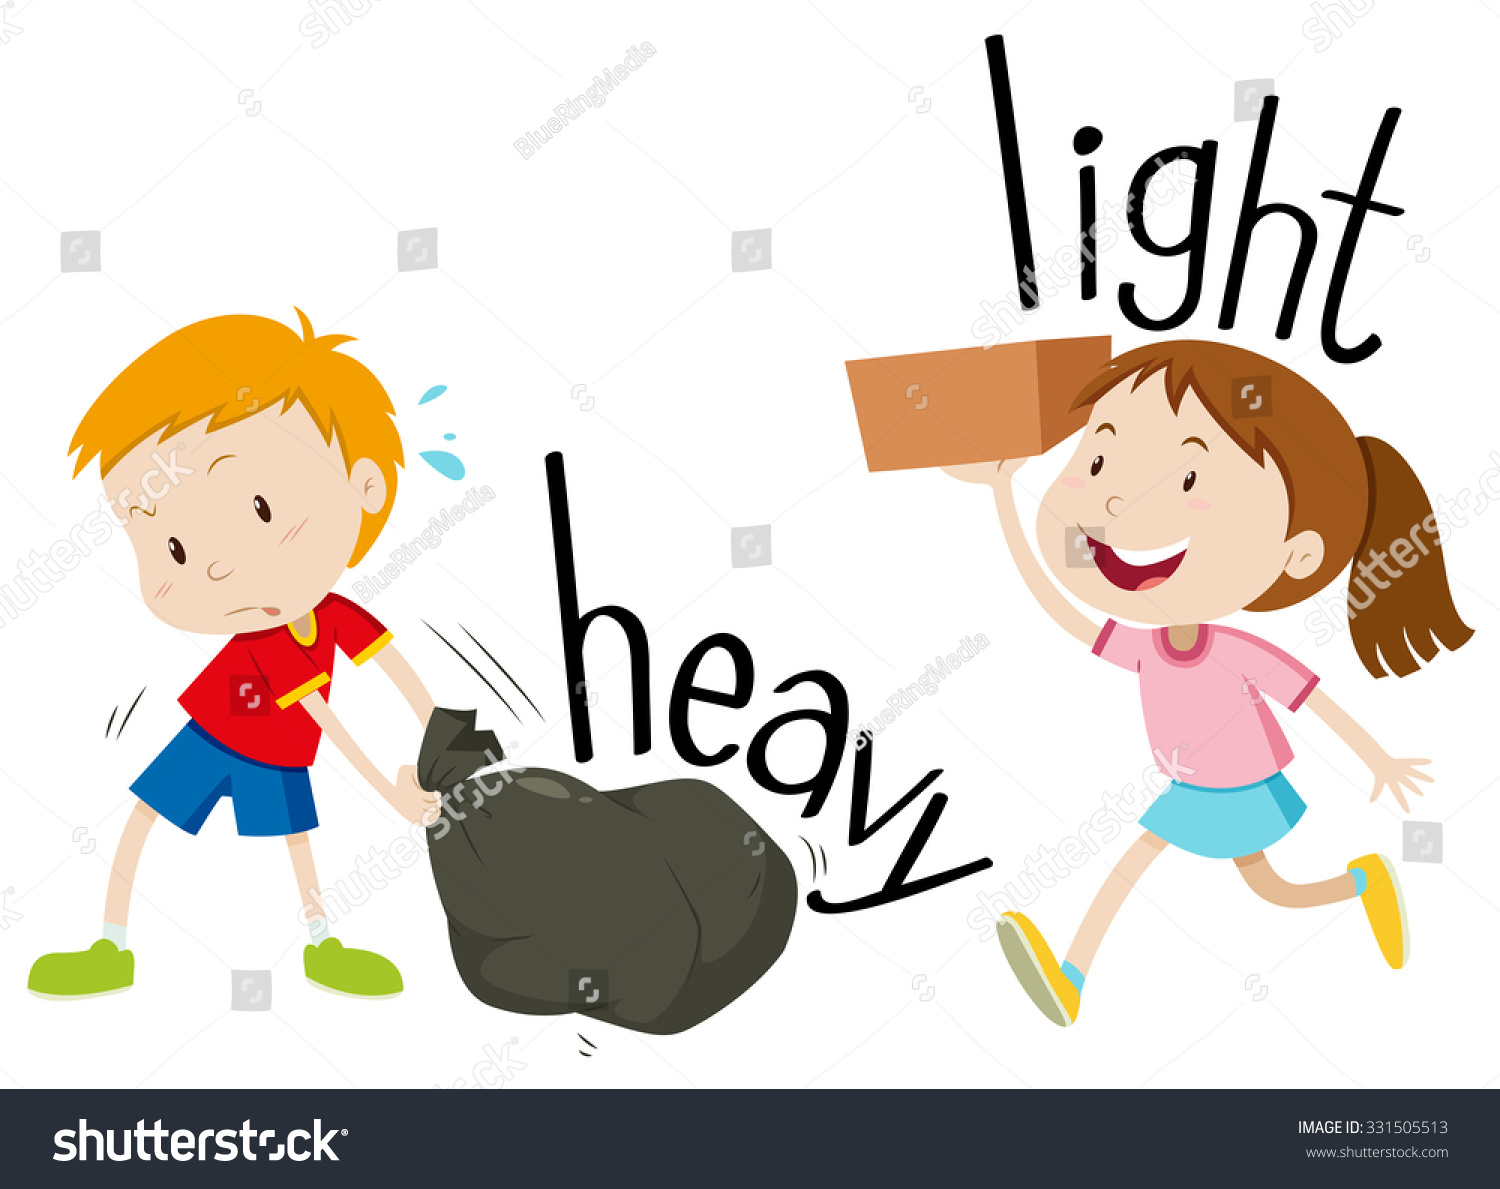 Opposite Adjectives Heavy Light Illustration Stock Vector